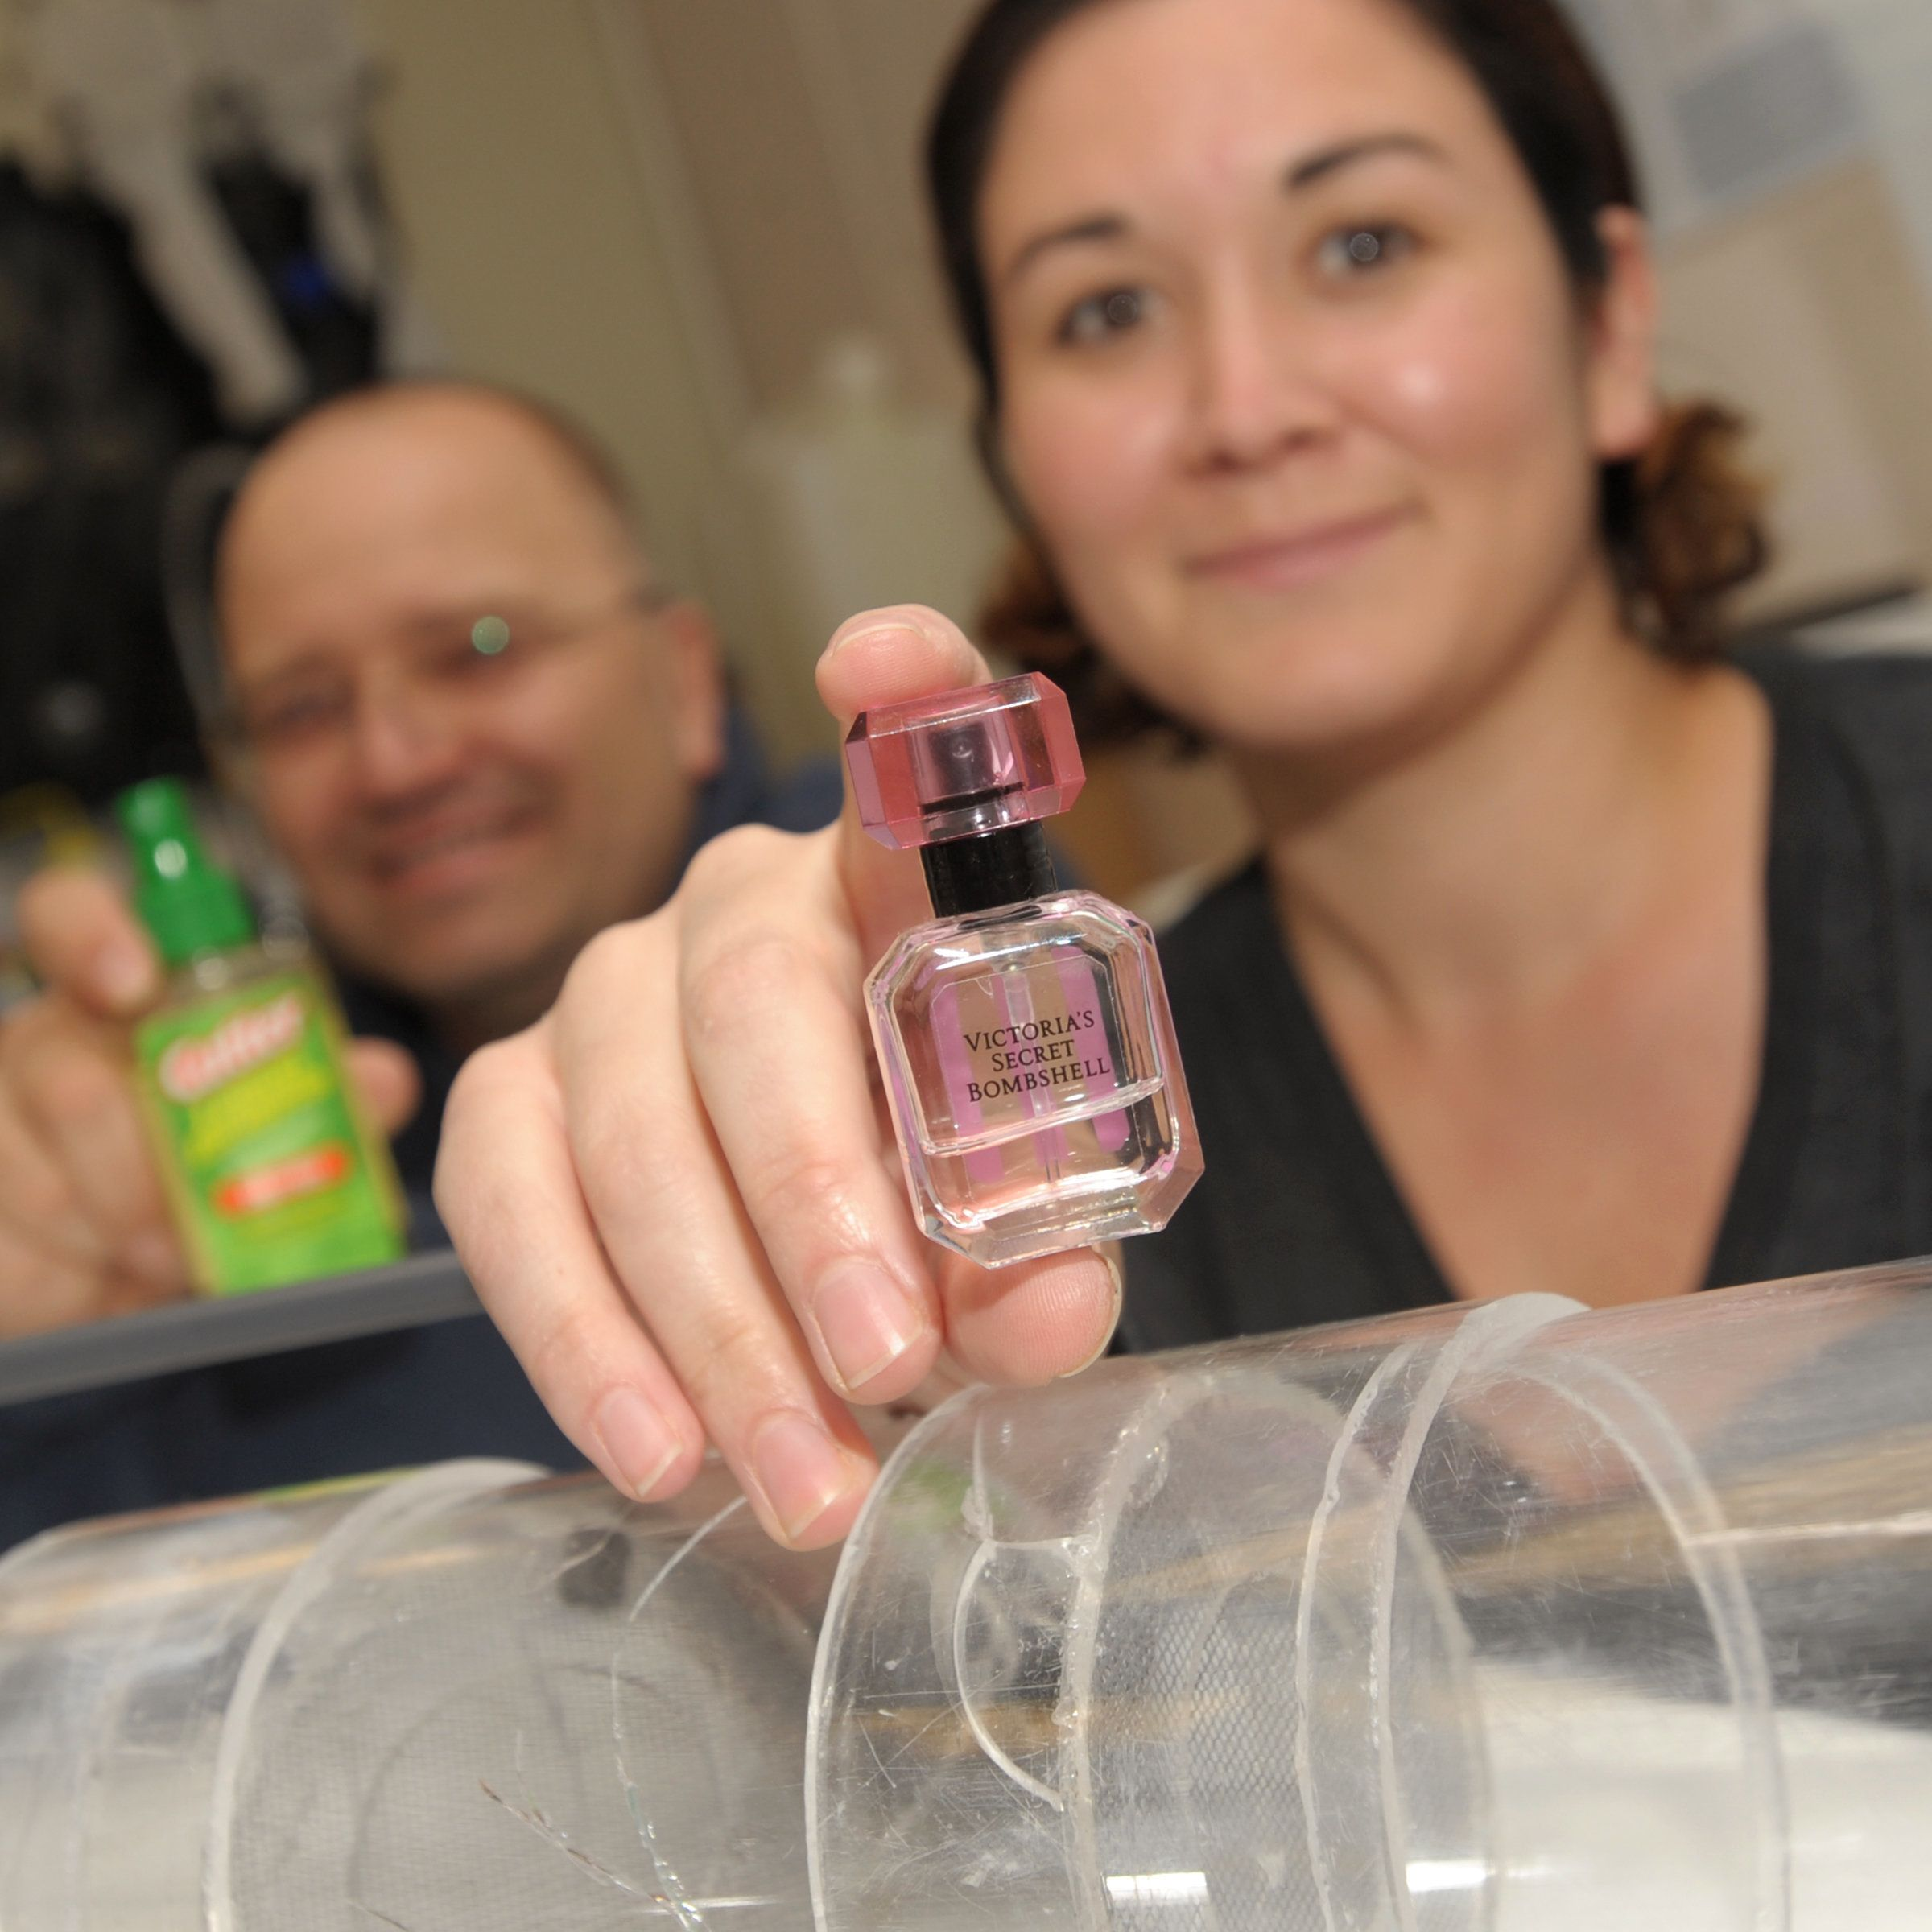 NMSU biology professor Immo Hansen (left) and research assistant Stacy Rodriguez (right) display household products they test